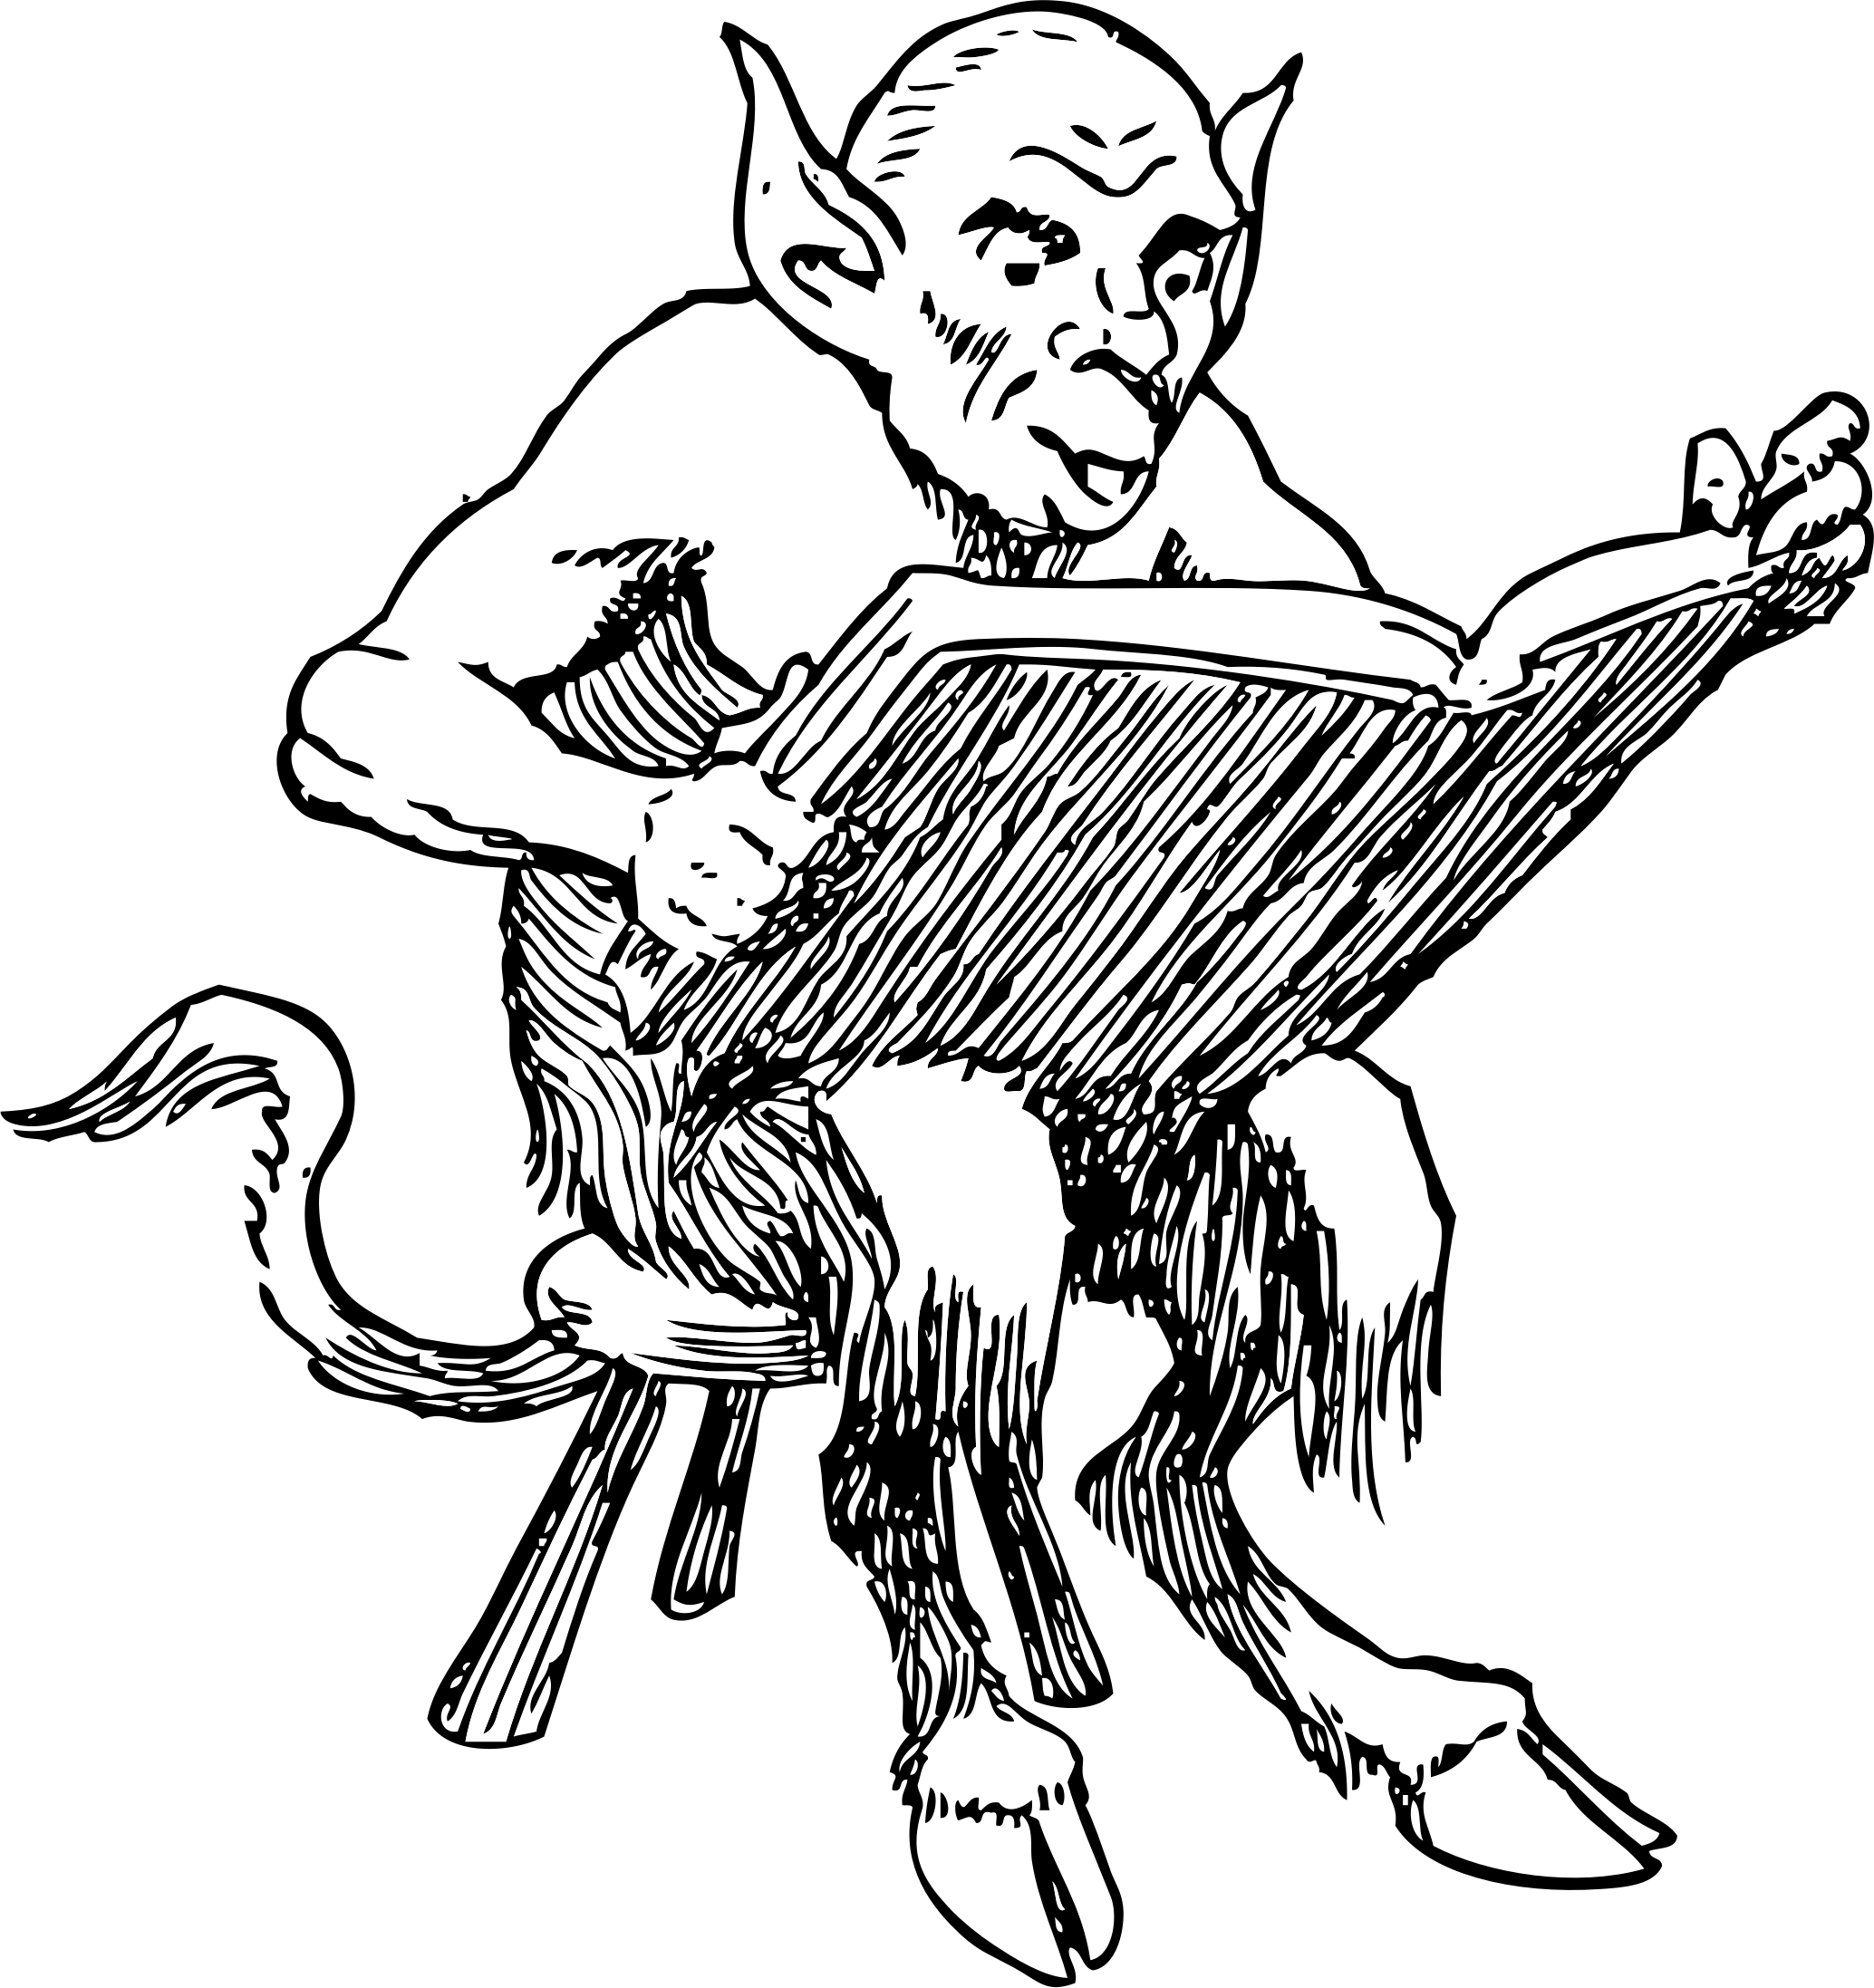 Demonic drawing simple. Clipart demon reading book